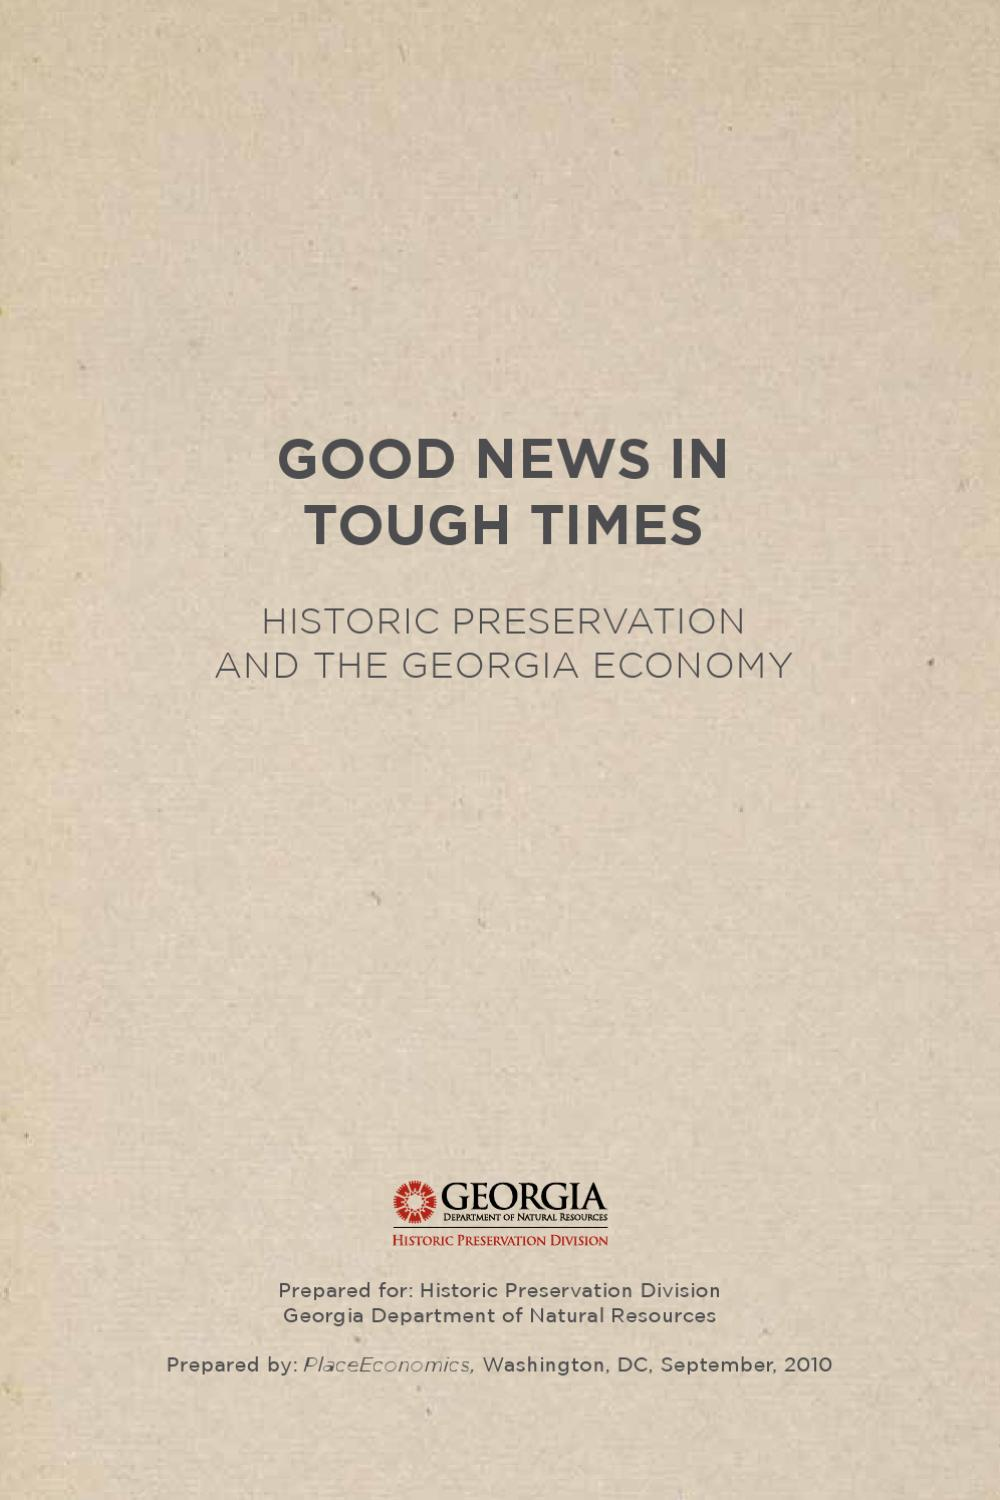 Good news in tough times by historic preservation division good news in tough times by historic preservation division georgia dnr issuu xflitez Choice Image